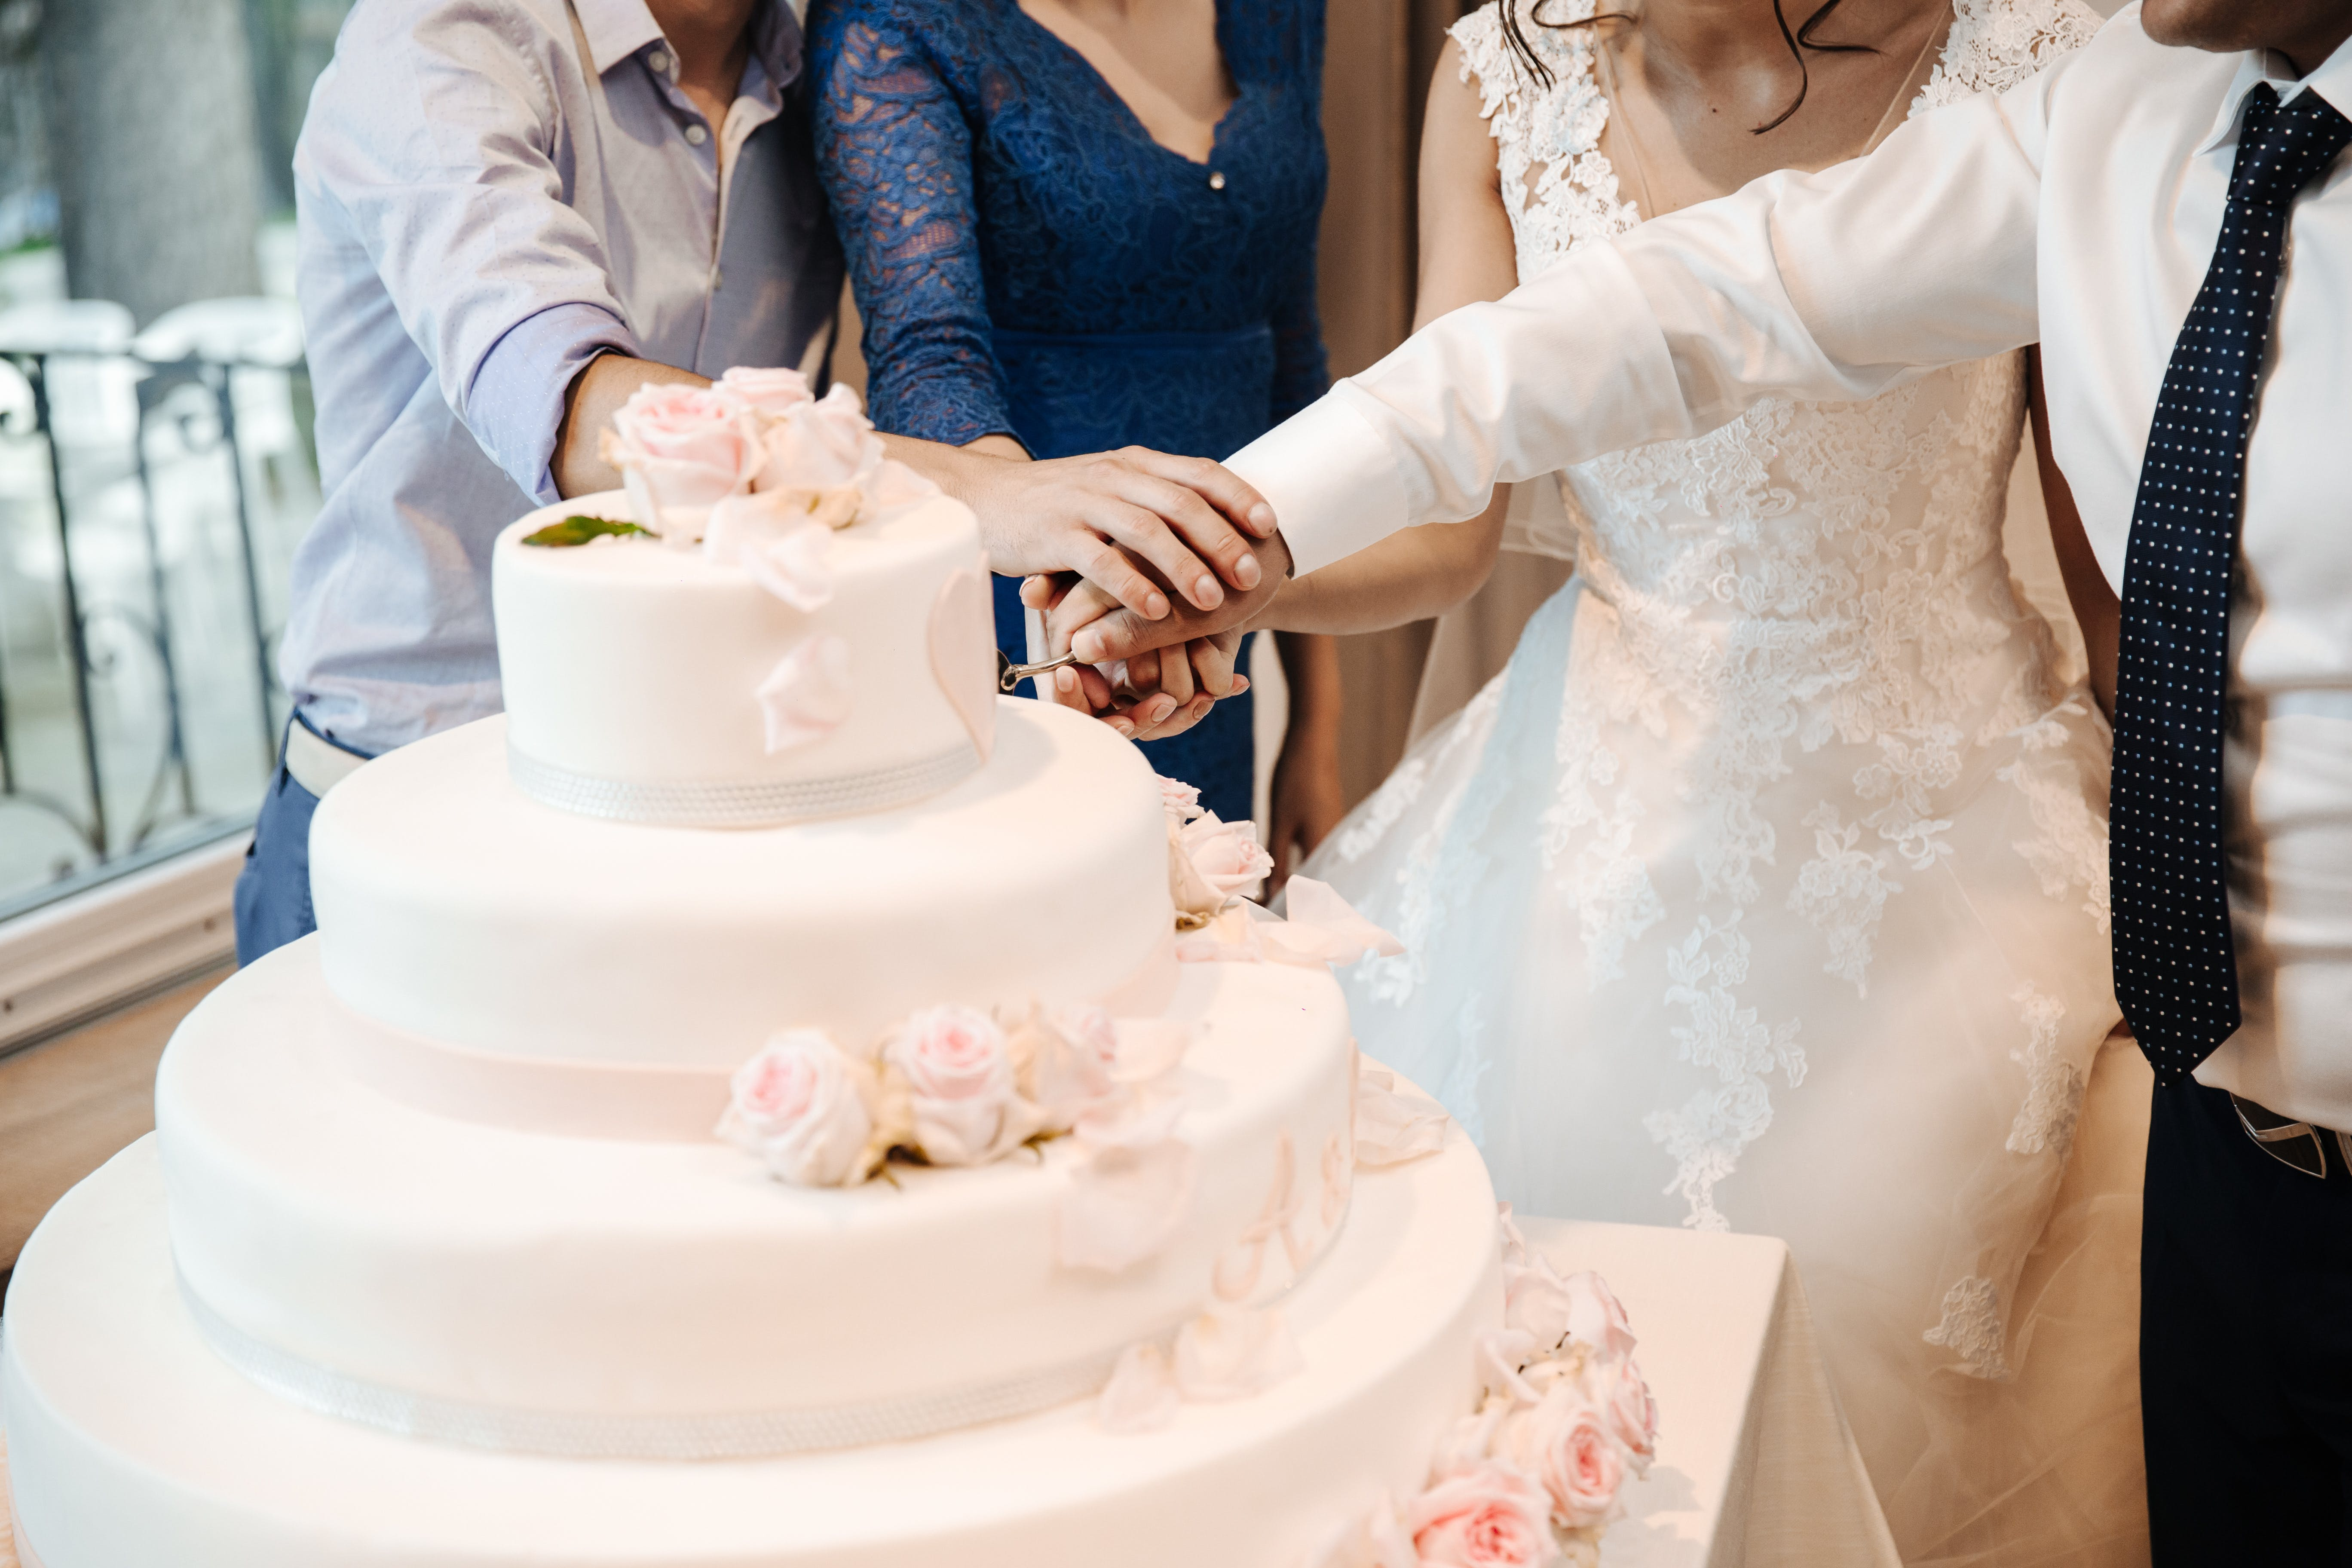 People Cutting Cake